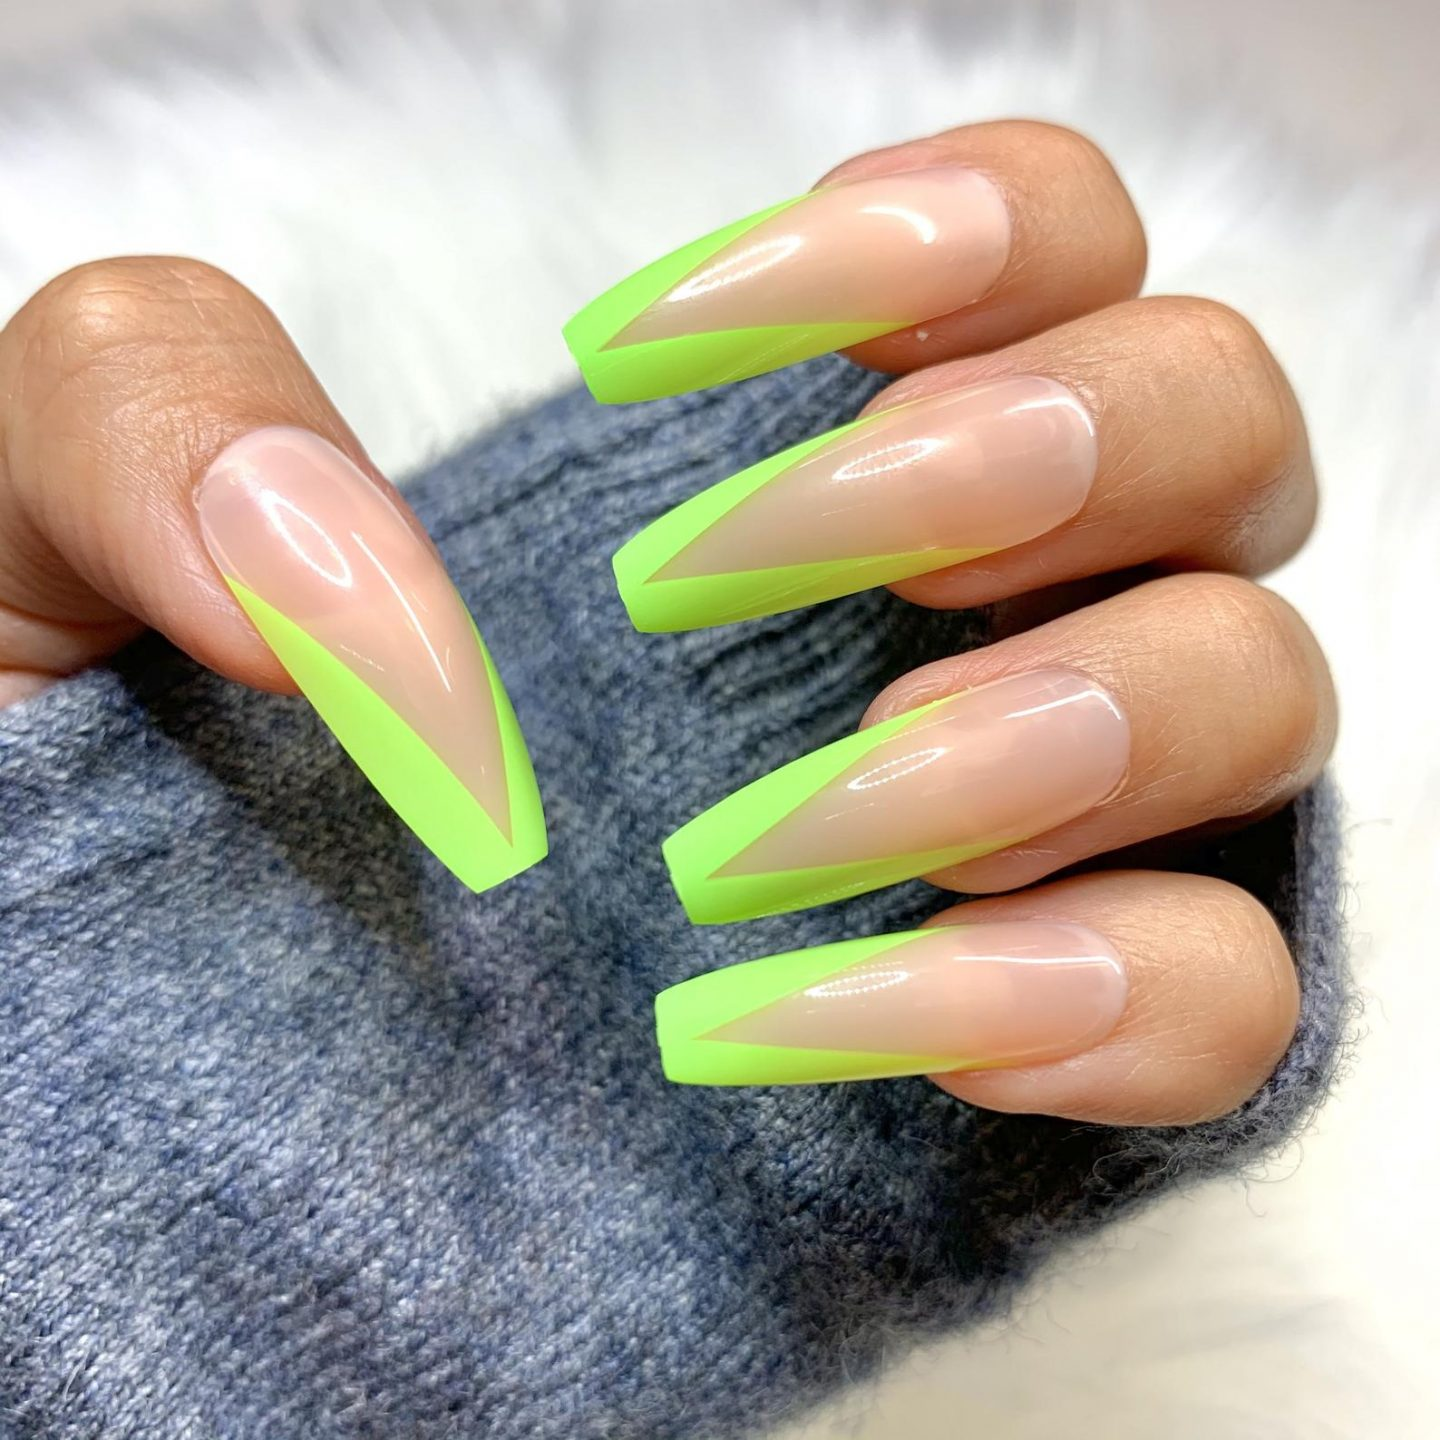 Neon green French tip nails in coffin shape